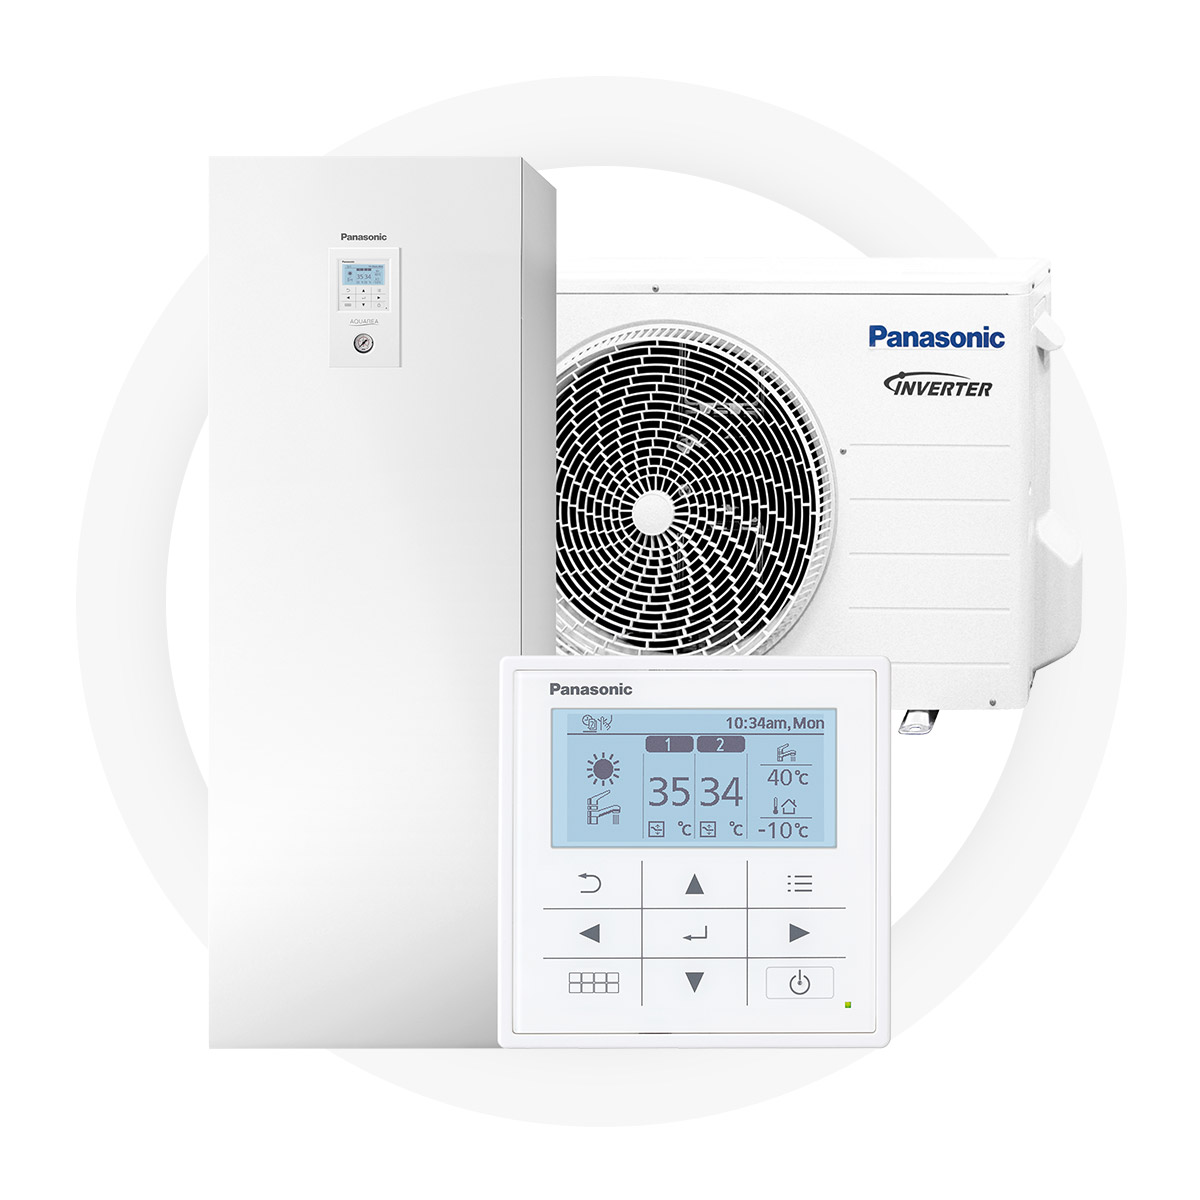 Panasonic t-cap all-in-one - Integrated 100 L domestic water boiler Significant savings on energy bills – up to 78% less100% efficiency even at -20°C ambient temperaturePossible to integrate to an existing heating systemCreated for Nordic climate and tested at -27°C5-year full factory warranty by Panasonic